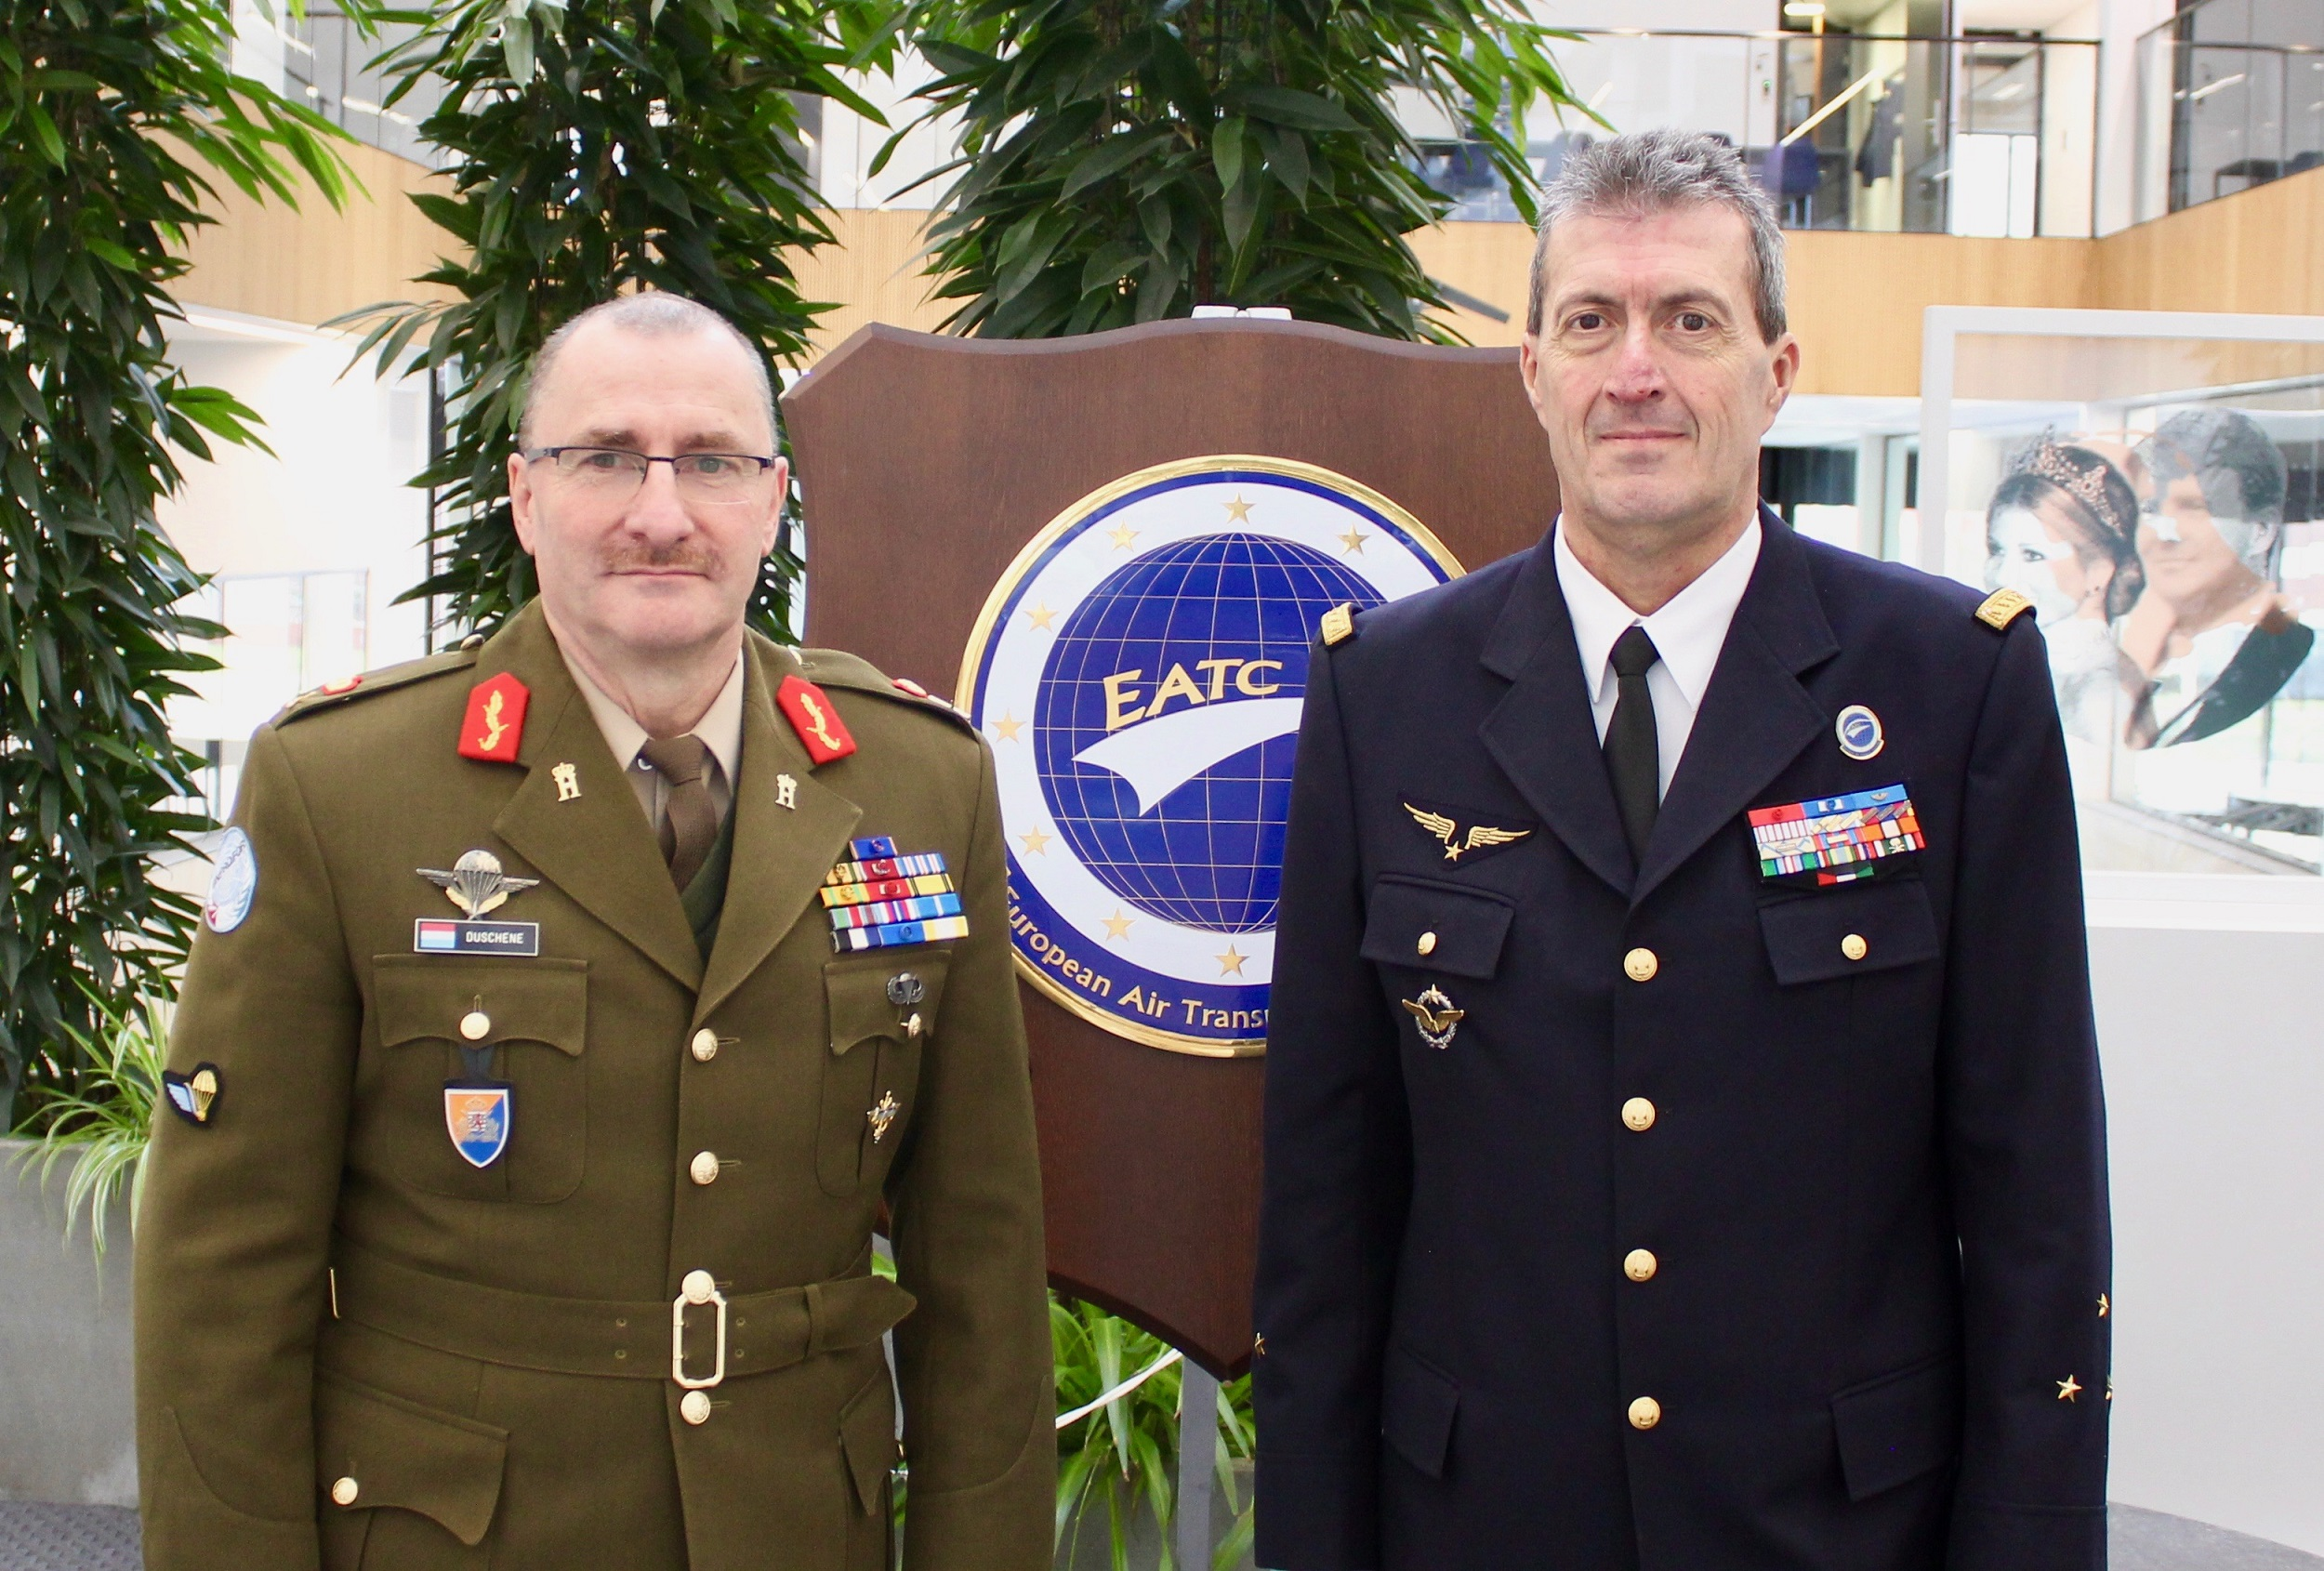 The Luxembourg Chief of Defence visits EATC